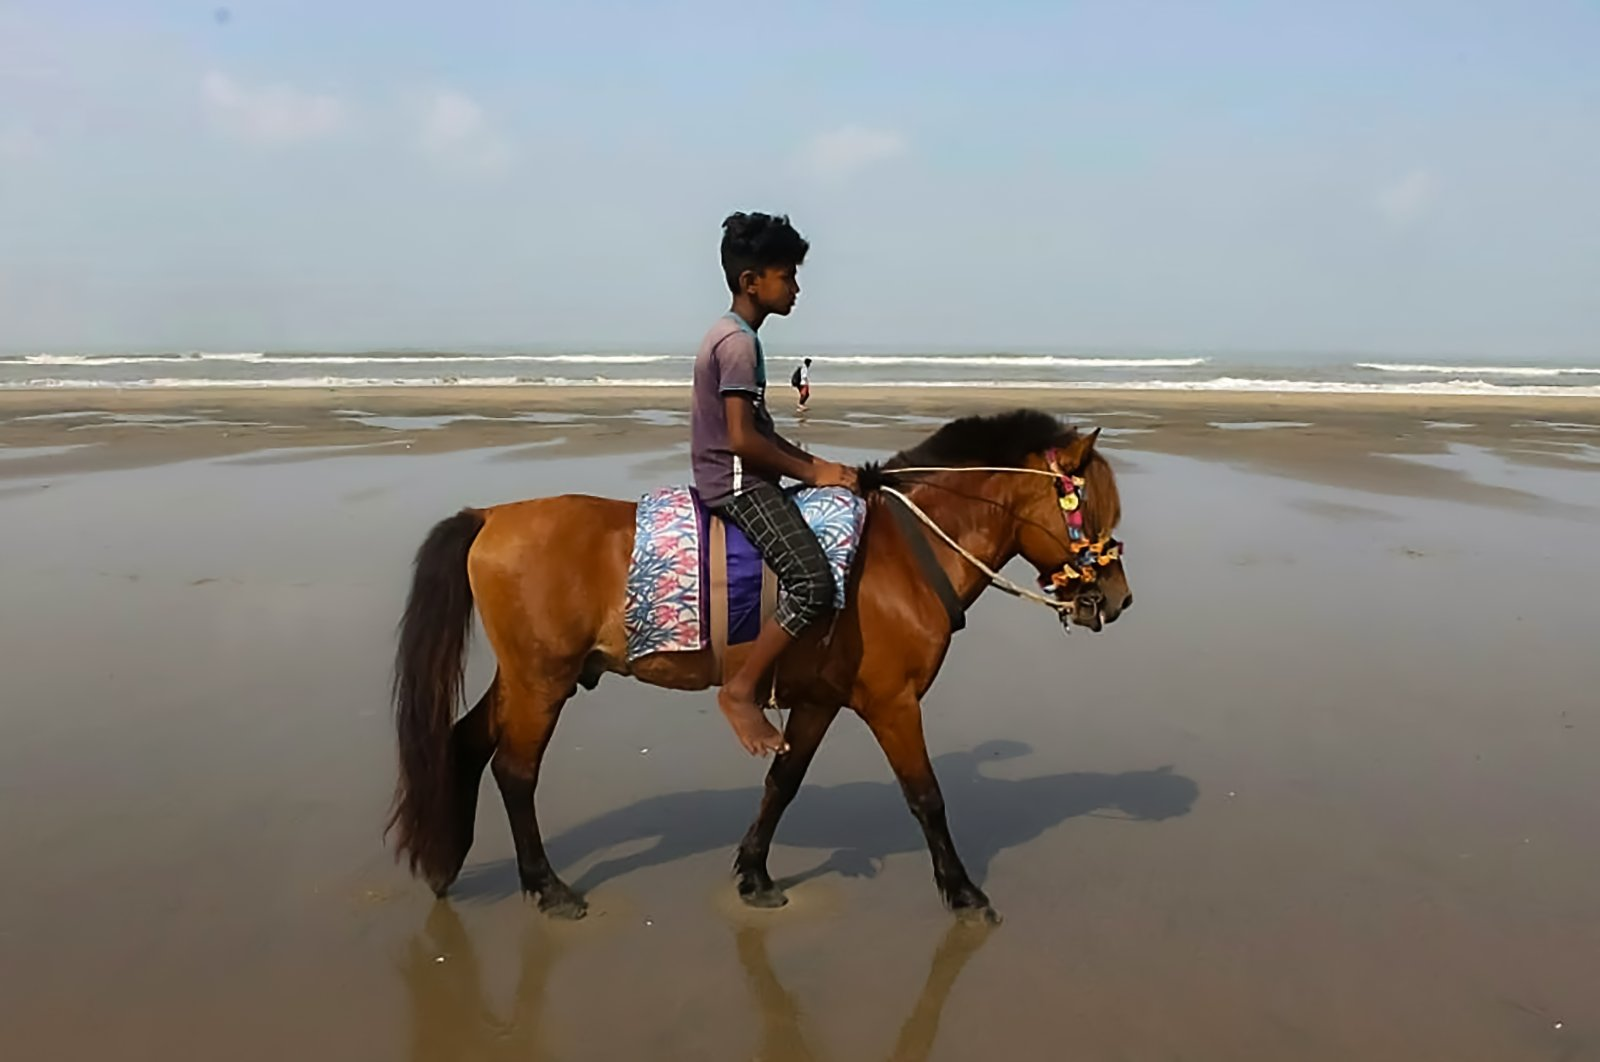 A youth waits for customers to ride on his horse, after some 21 horses have starved to death in the last month as COVID-19 lockdowns brought the country's most visited tourist spot to its knees, at a beach in Cox's Bazar, Bangladesh, May 29, 2021. (AFP Photo)